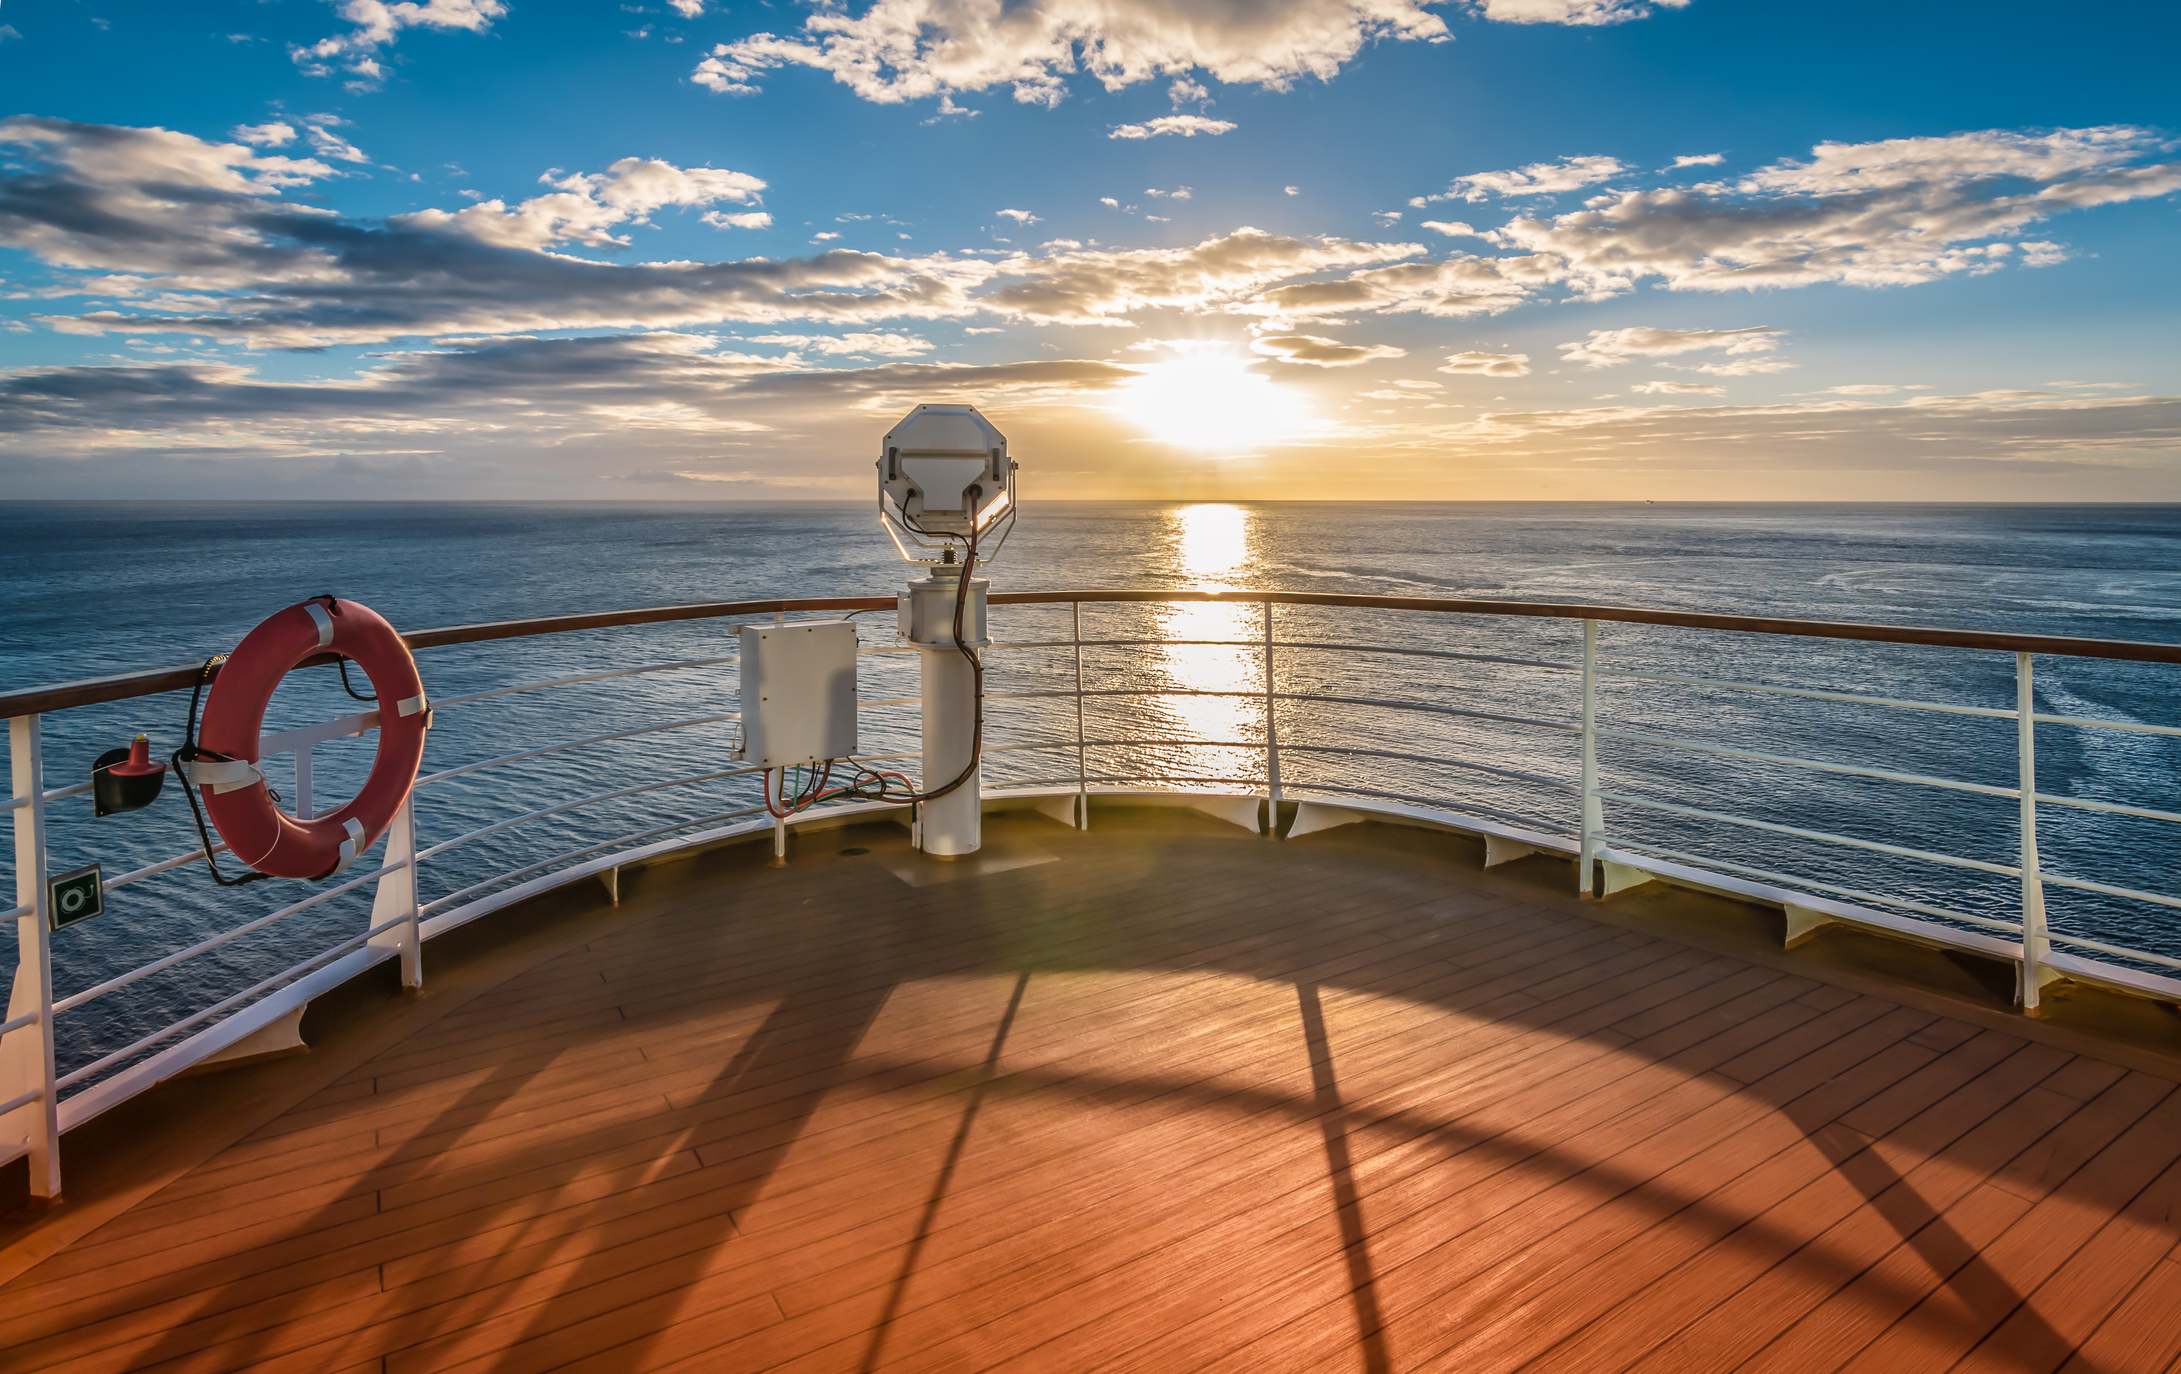 Transatlantic Cruise at Sunset